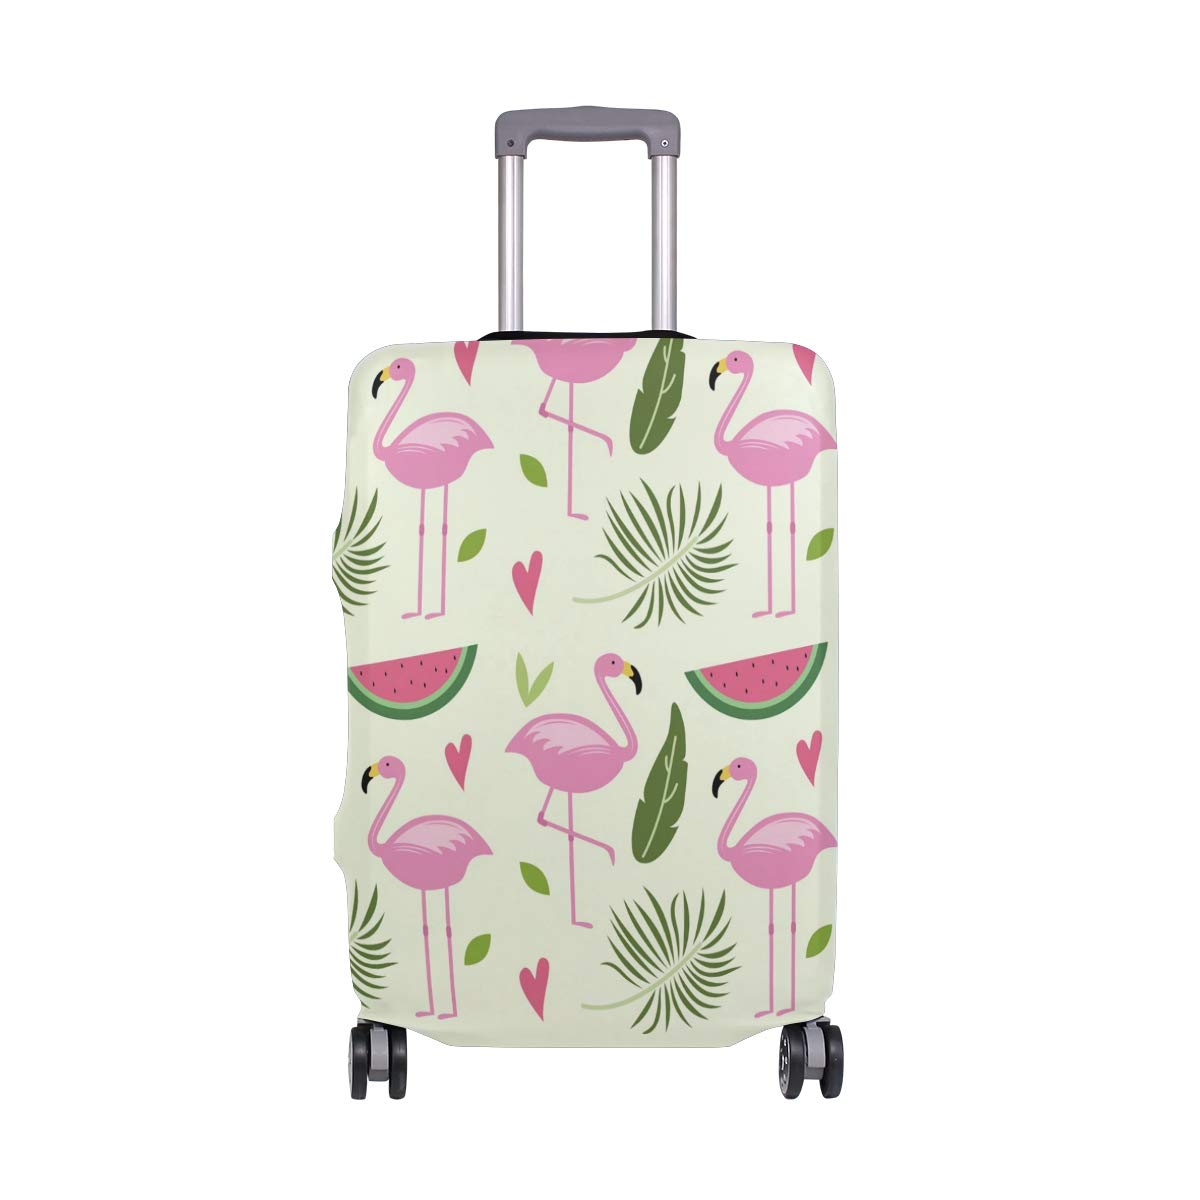 Baggage Covers Flamenco-Summer-Pattern Washable Protective Case